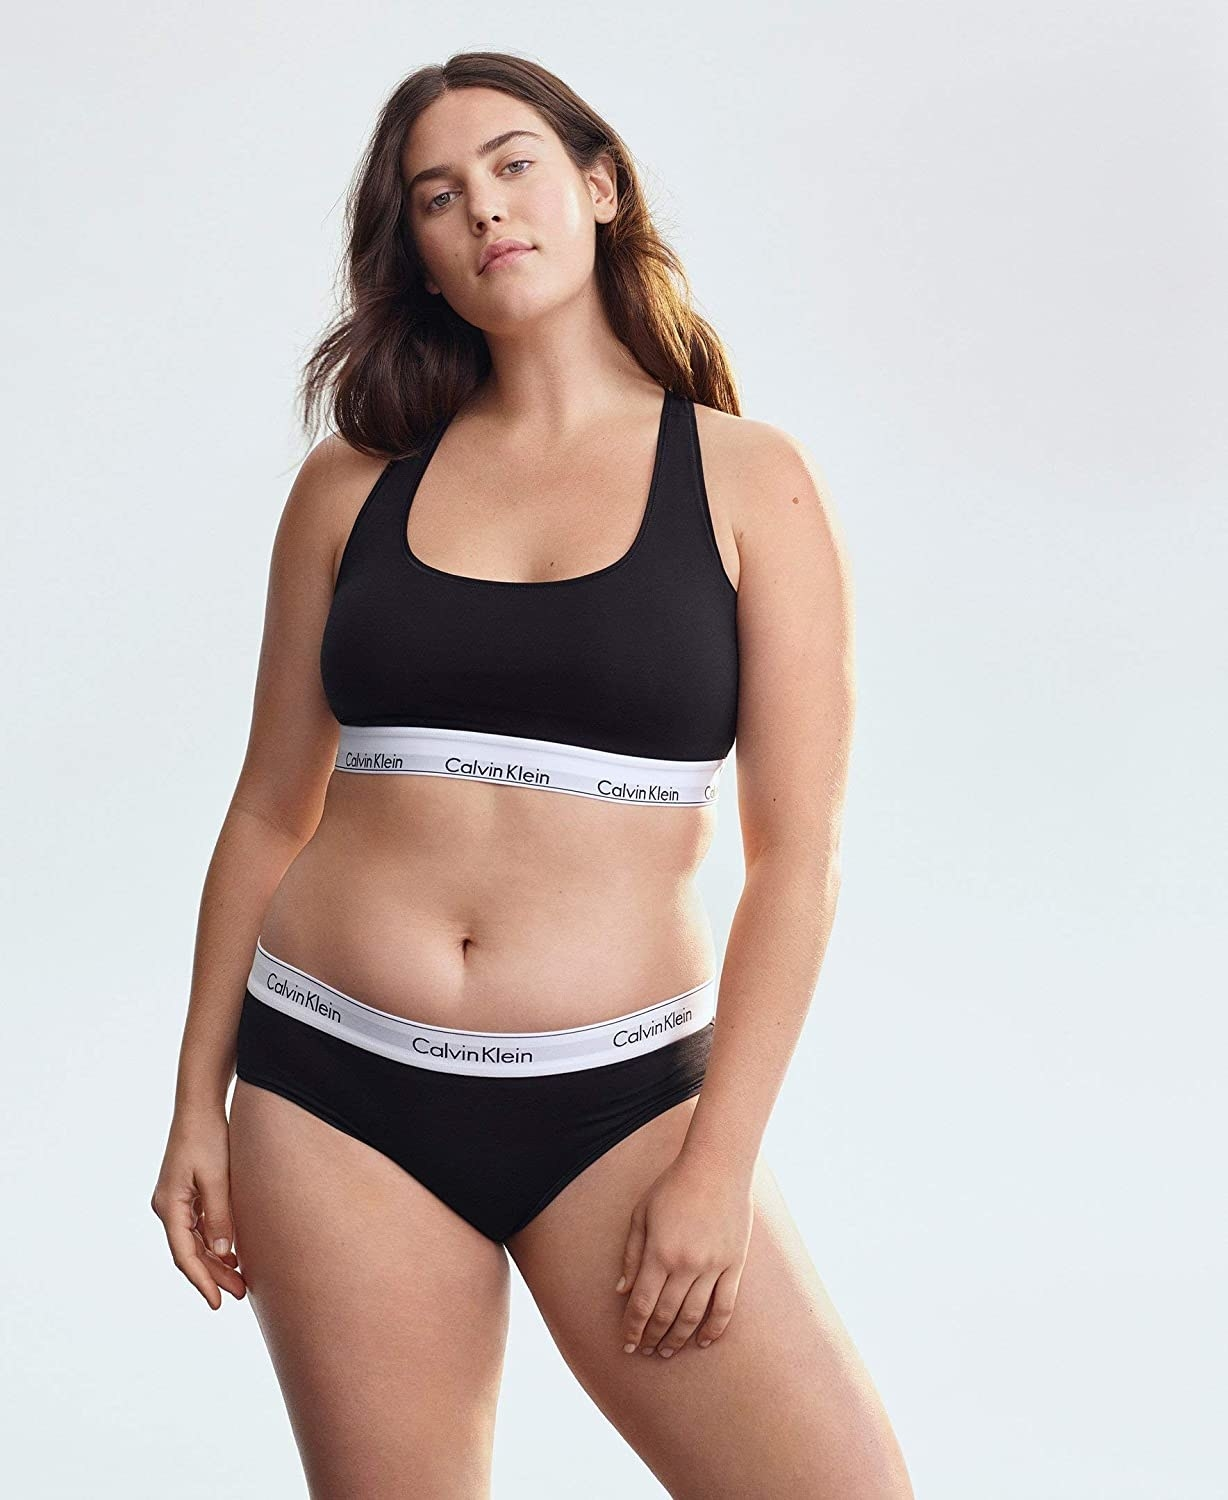 a model in a black bralette with the calvin klein elastic along the hem